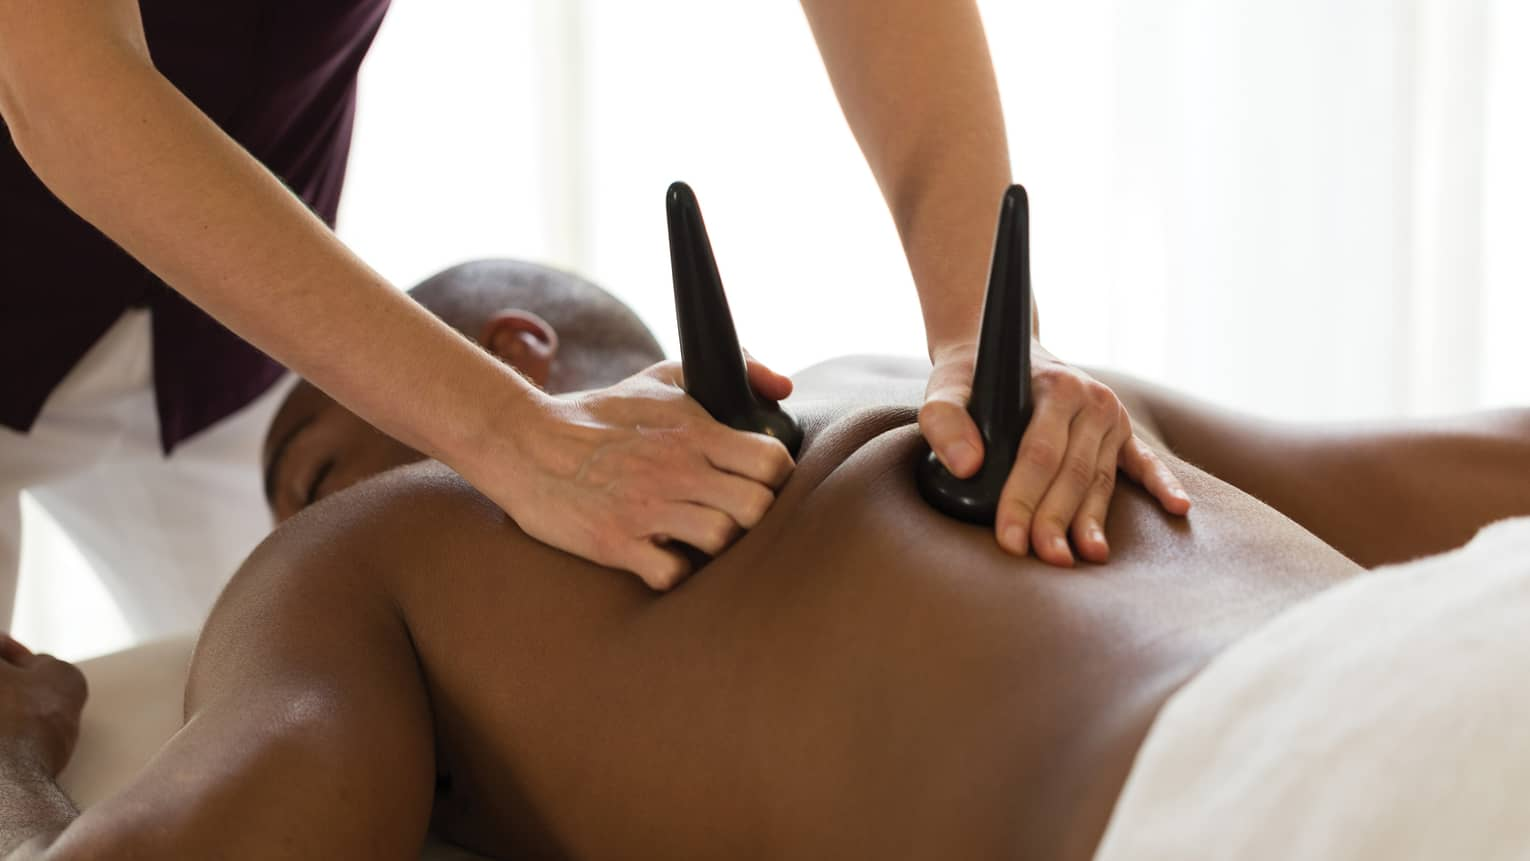 Masseuse pressed sculpted basalt stones on man's bare shoulders during massage